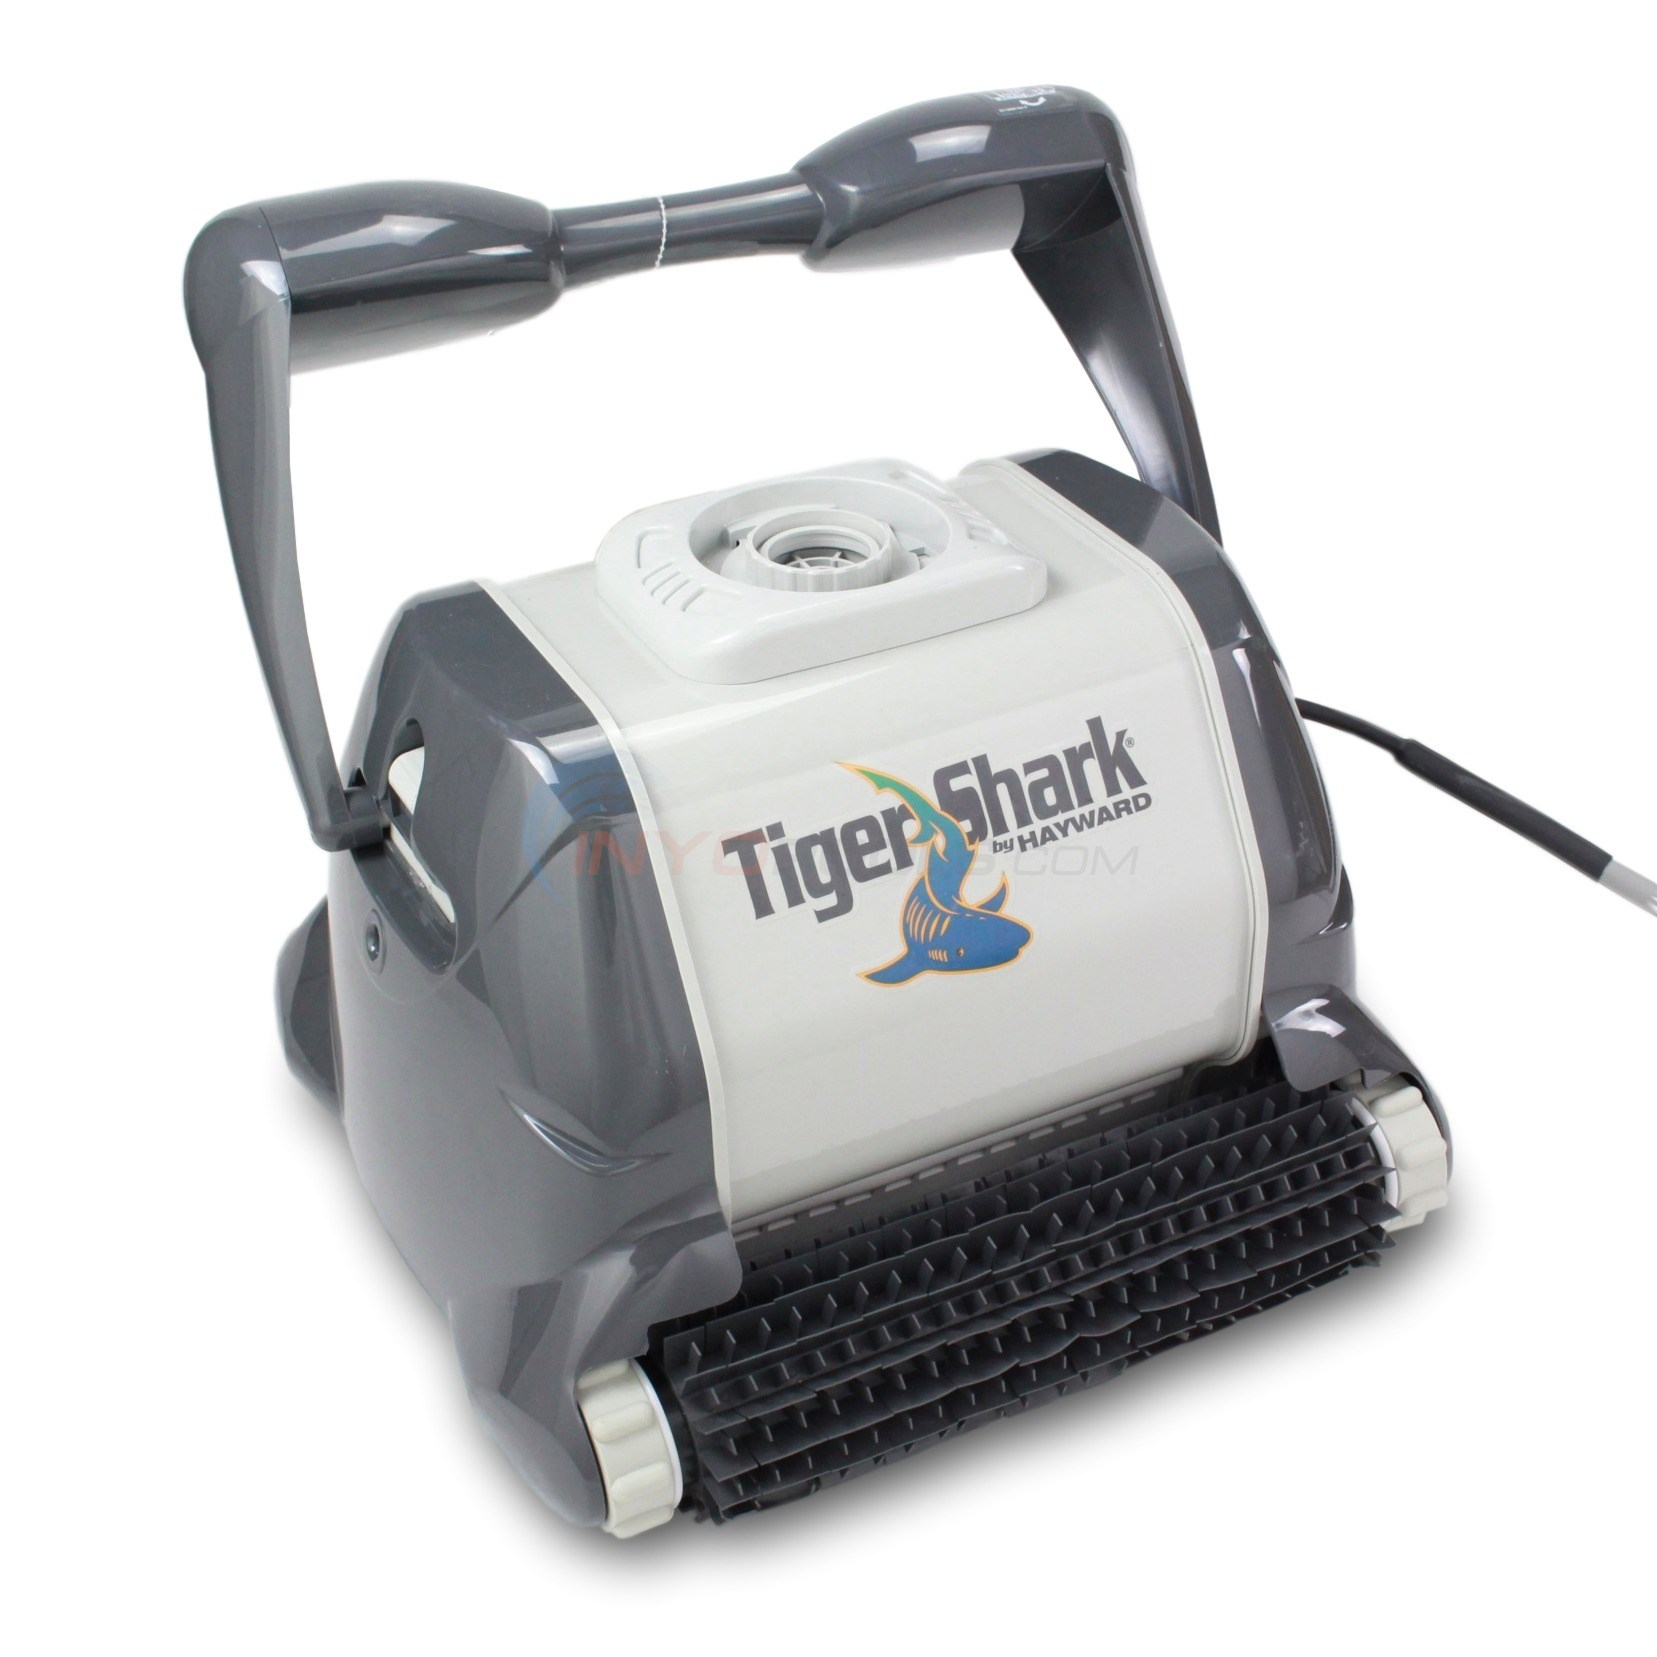 AquaVac Tiger Shark Pool Cleaner Gray - 9950